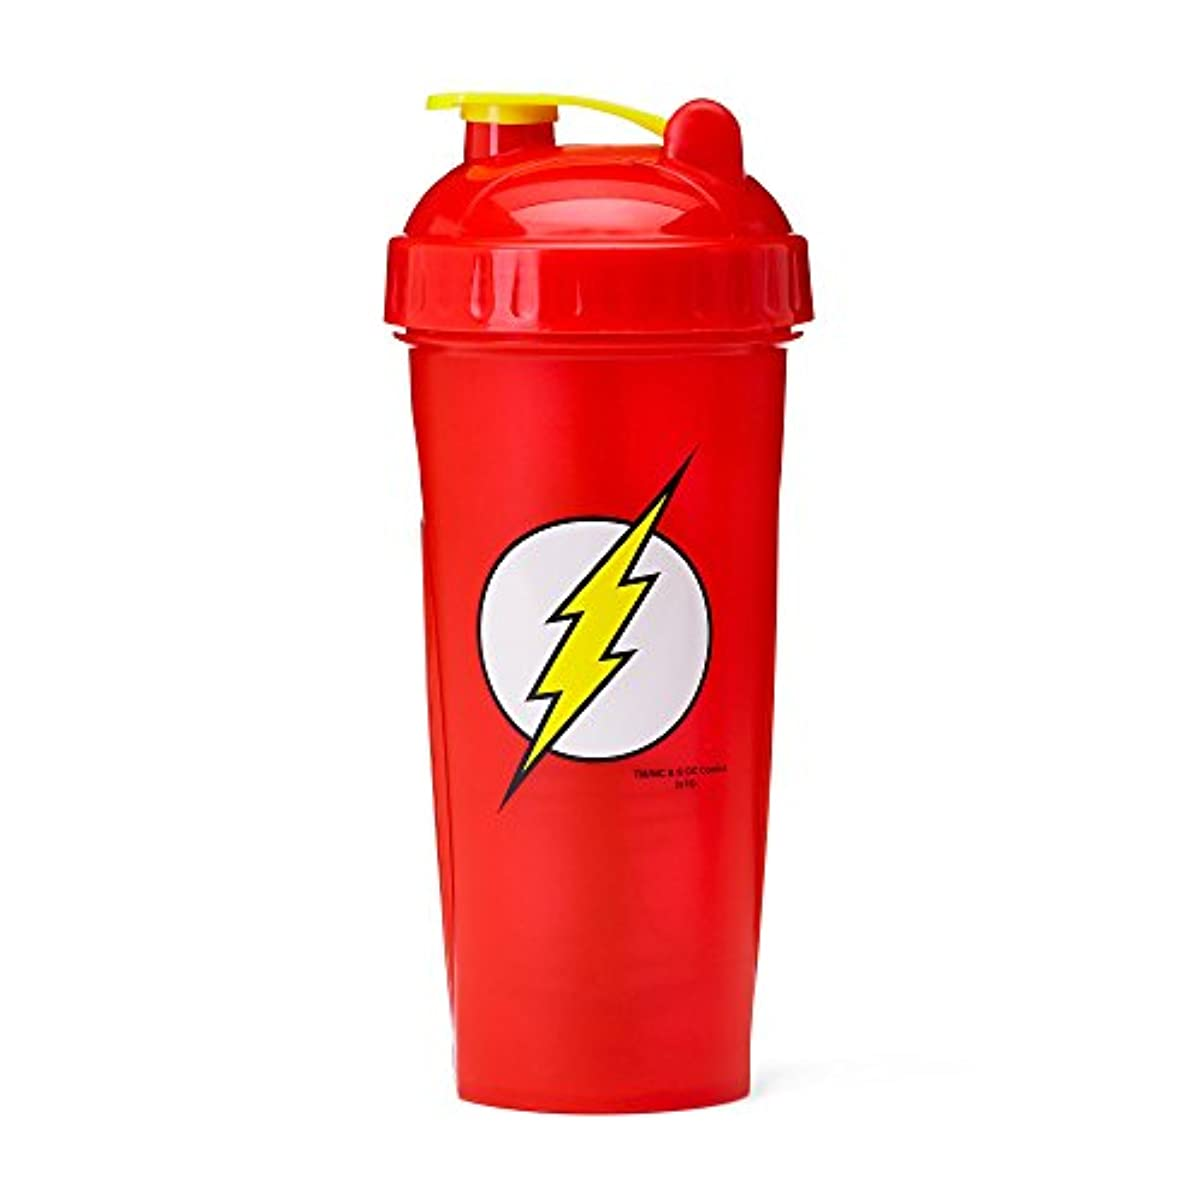 説明的記憶に残る汚染されたPerfectShaker Hero Series The Flash Shaker Cup (800ml) by Perfectshaker